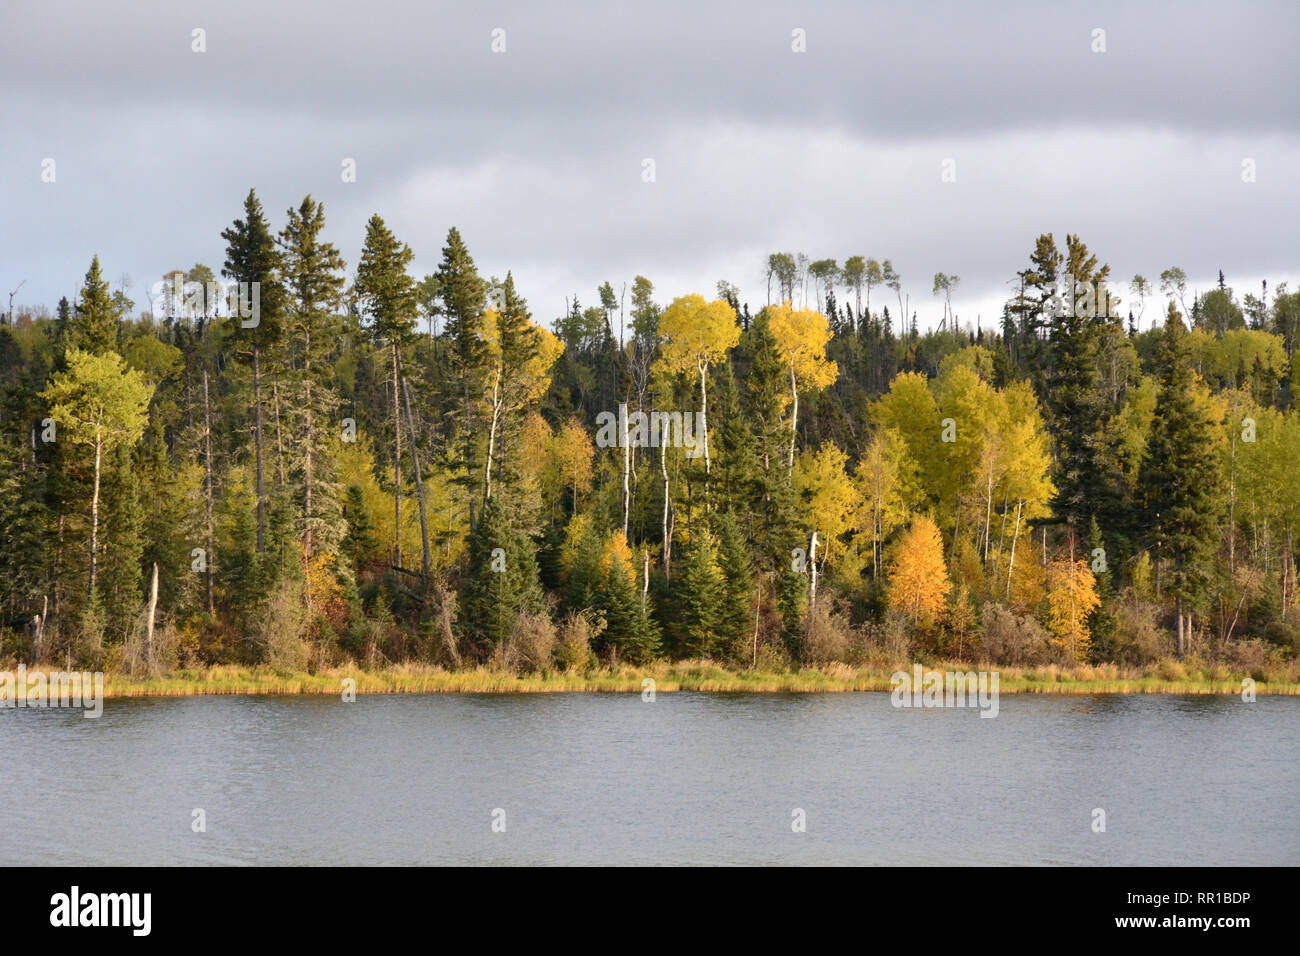 The autumn colours of the boreal forest on the shores of Otter Lake near the village of Missinipe in northern Saskatchewan, Canada. - Stock Image